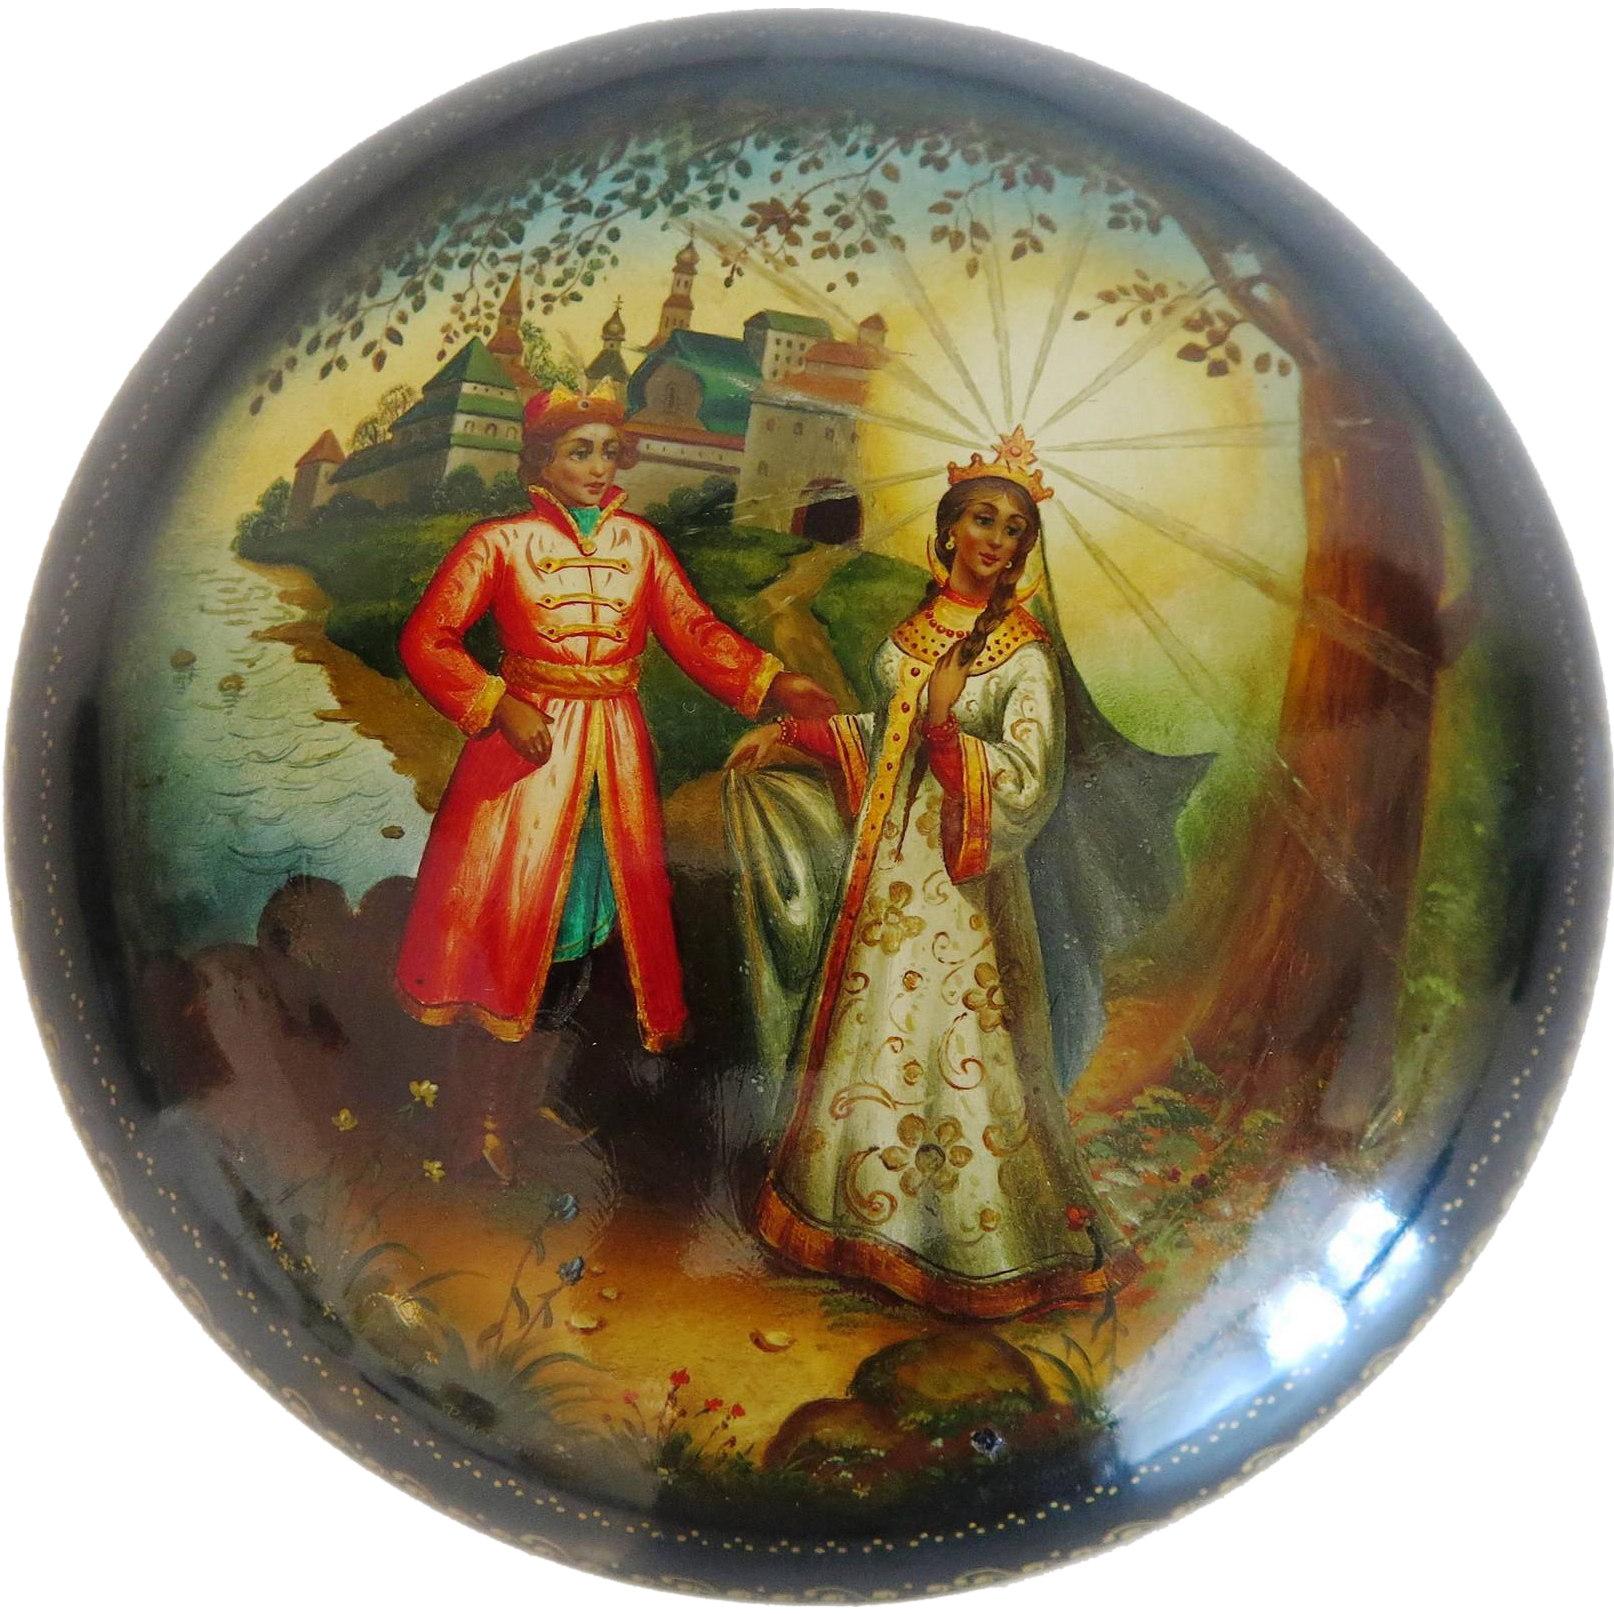 Russian lacquer box in Palekh style, 20th century